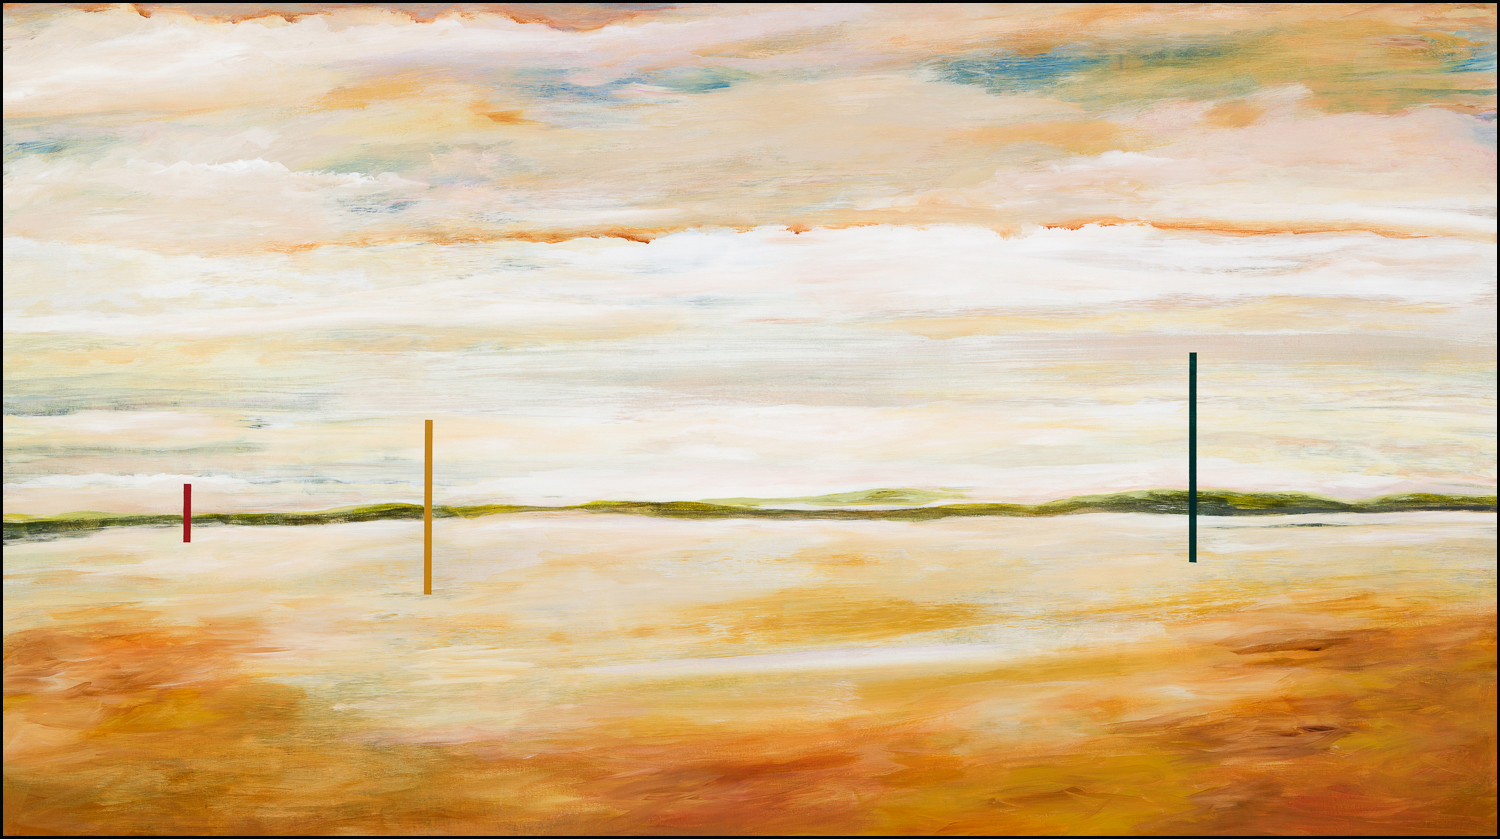 Communication II